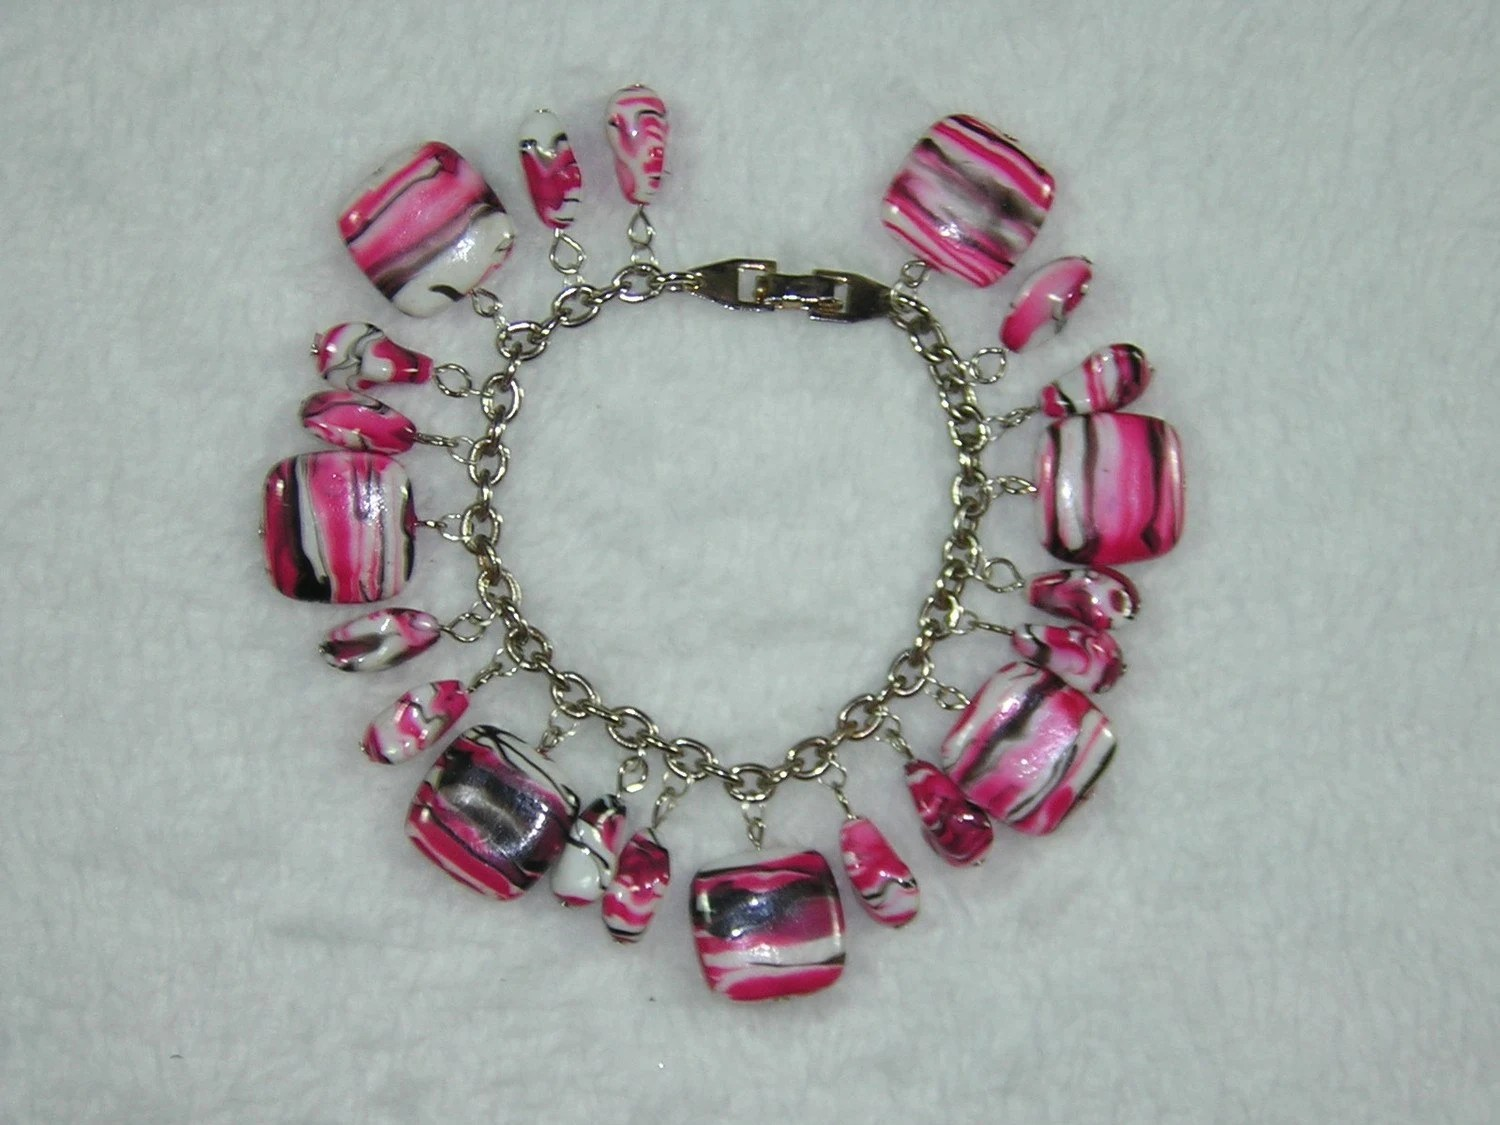 One of a Kind Upcycled Hot Pink, Black and White Beaded Charm Bracelet - Handmade by Rewondered D225B-00009 - $39.95